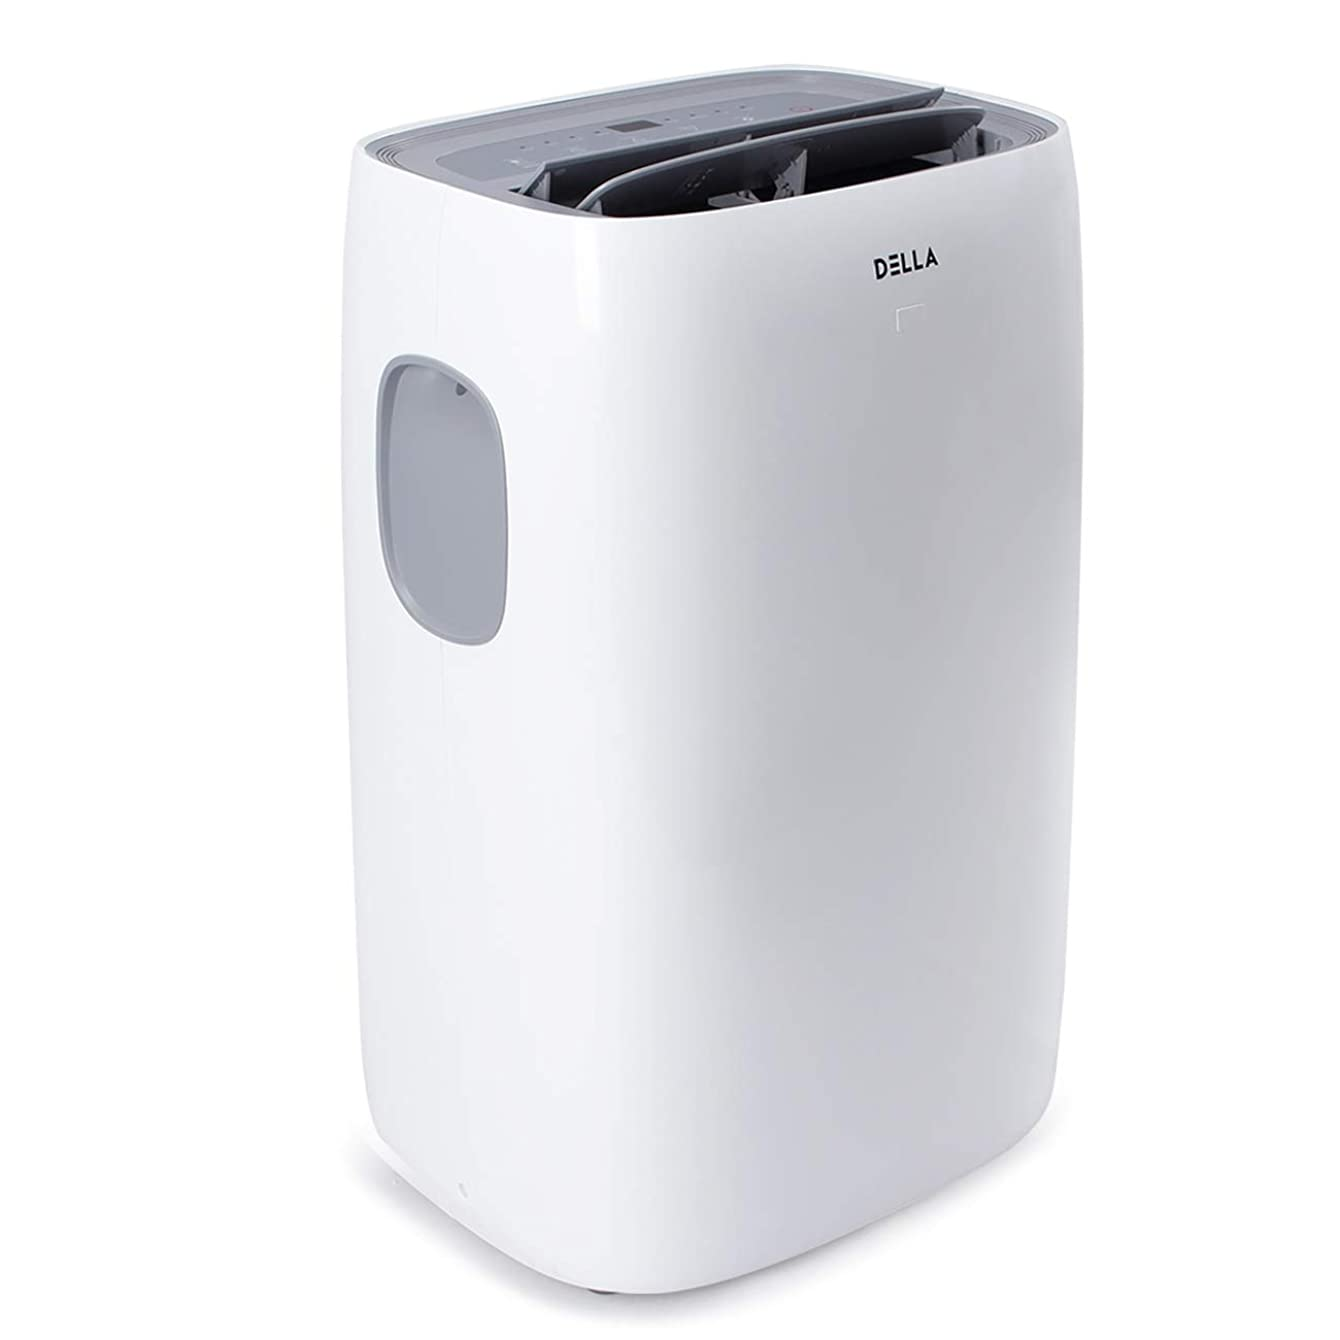 DELLA 12000 BTU Portable Air Conditioner Dehumidifier Fan 24hr Timer Self Evaporation Rooms Up To 550 Sq. Ft. Remote Window Kit & Wheels Included - White